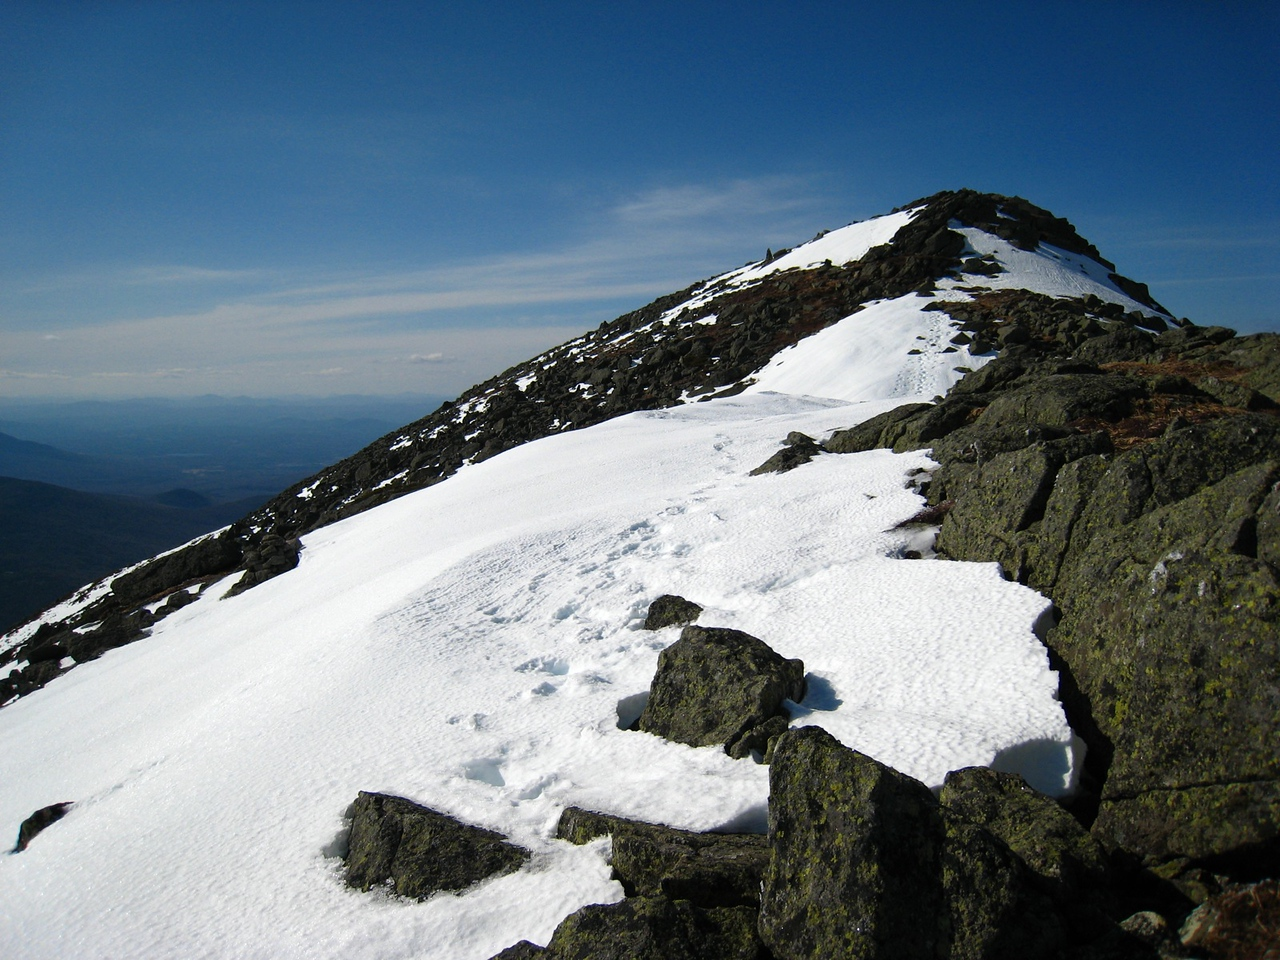 Looking up to the Summit of Mt. Martyr Eusebius (formerly Clay)